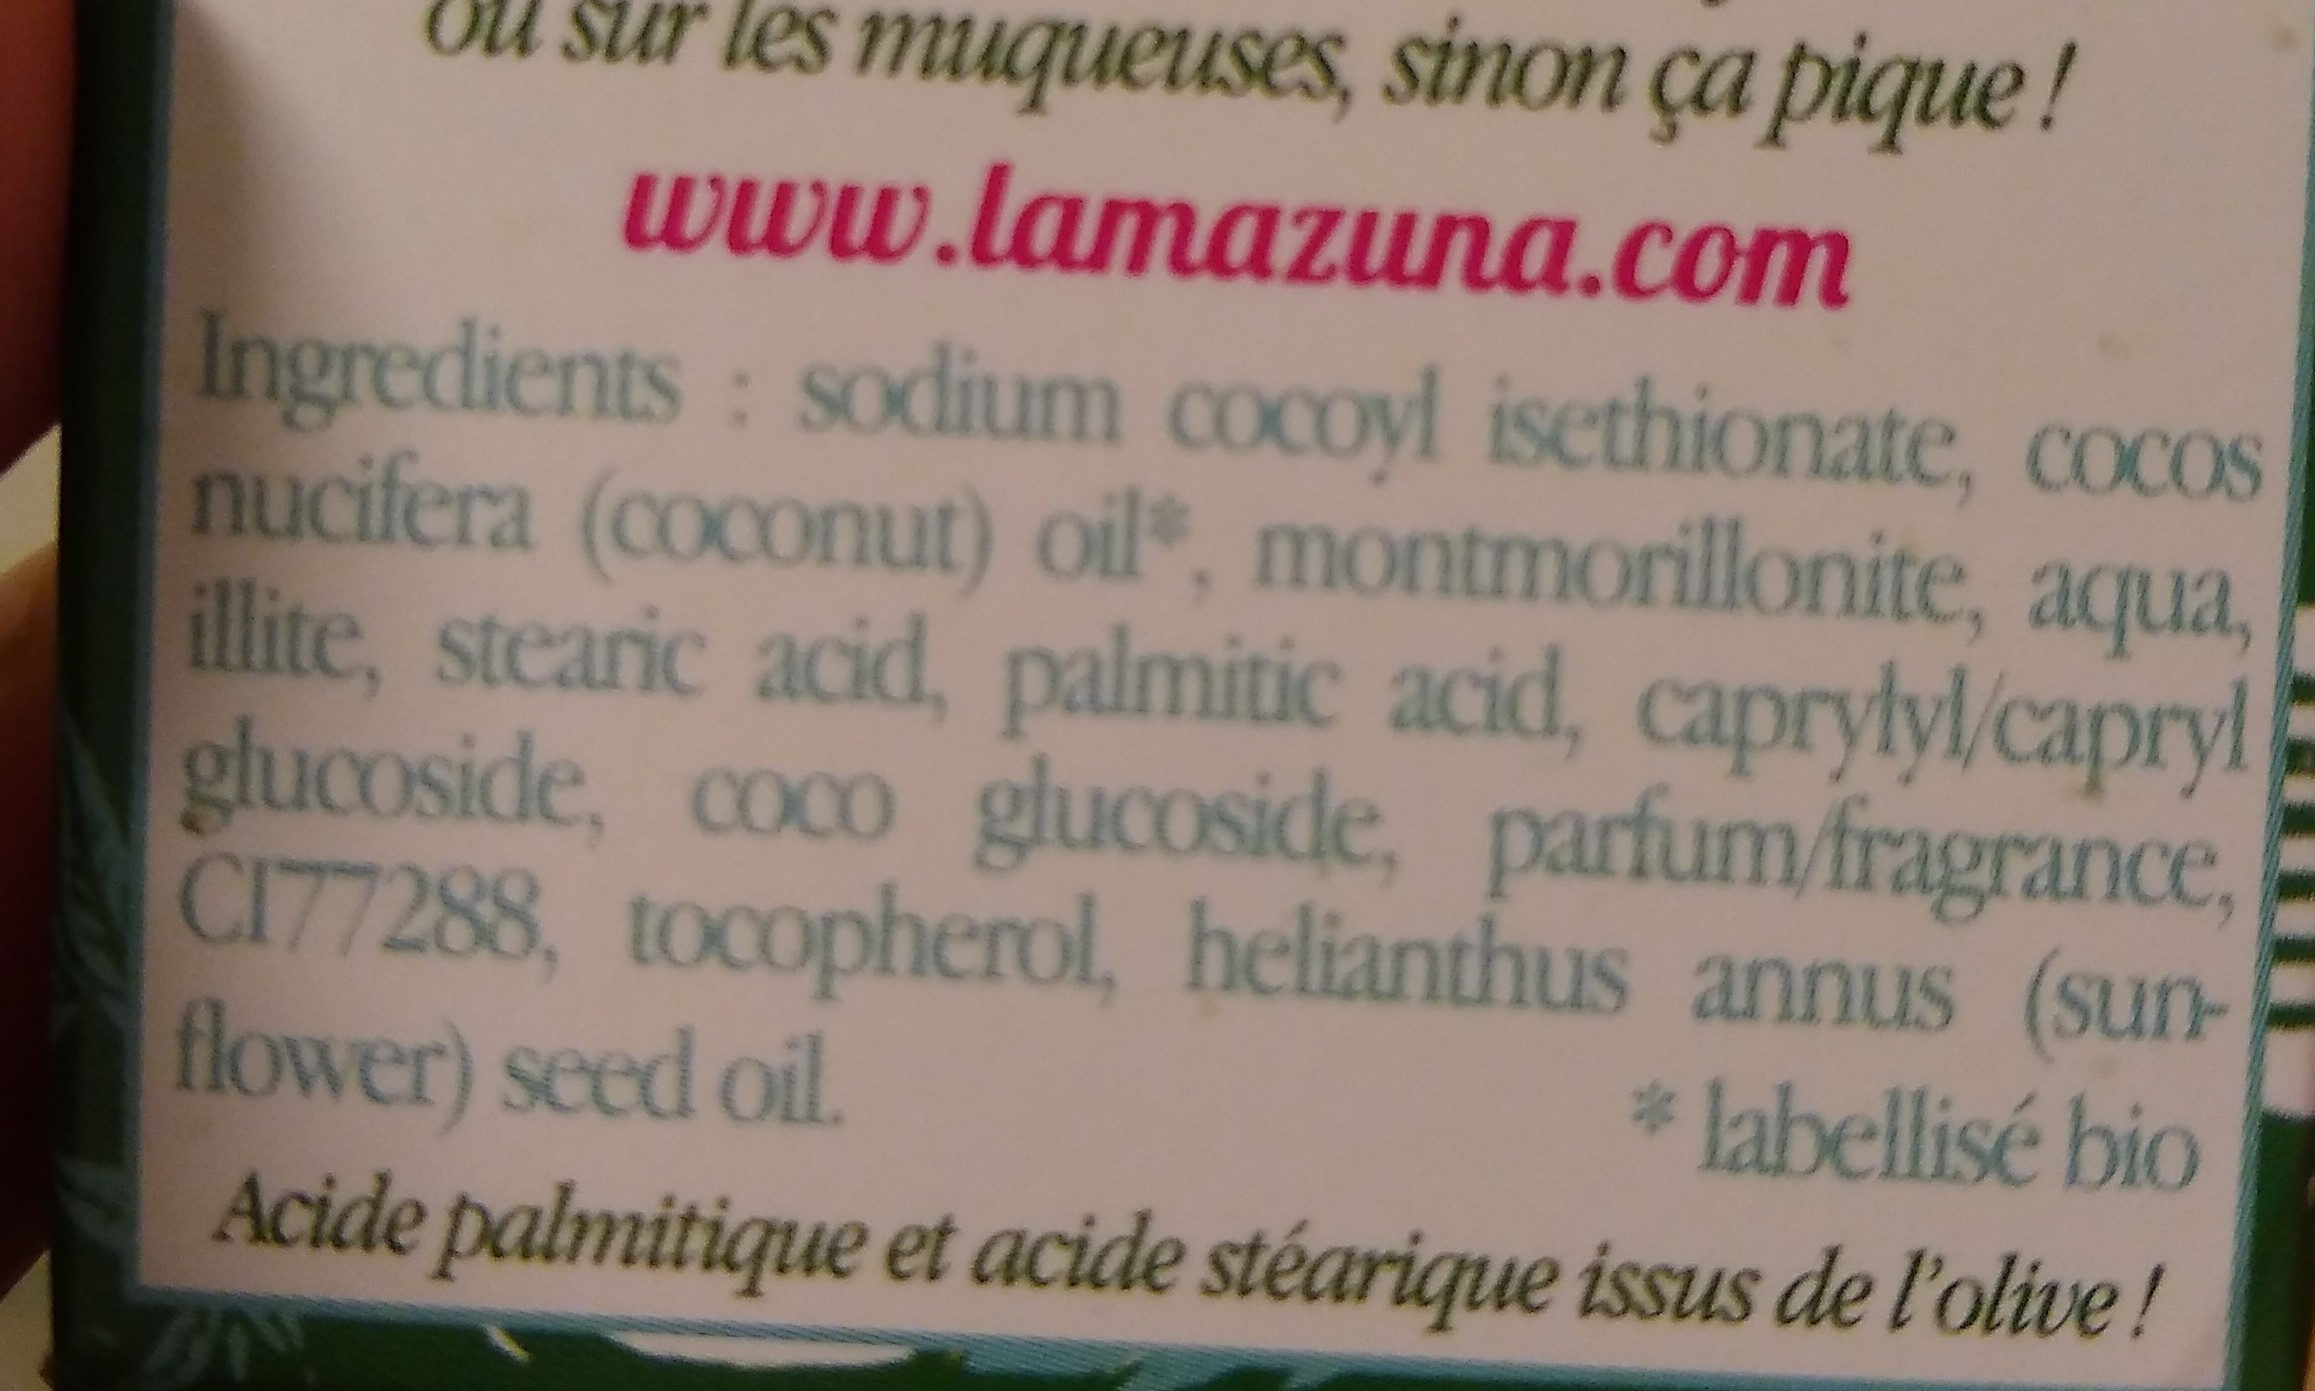 Shampoing solide - cheveux gras - au parfum d'herbes folles - Ingredients - fr